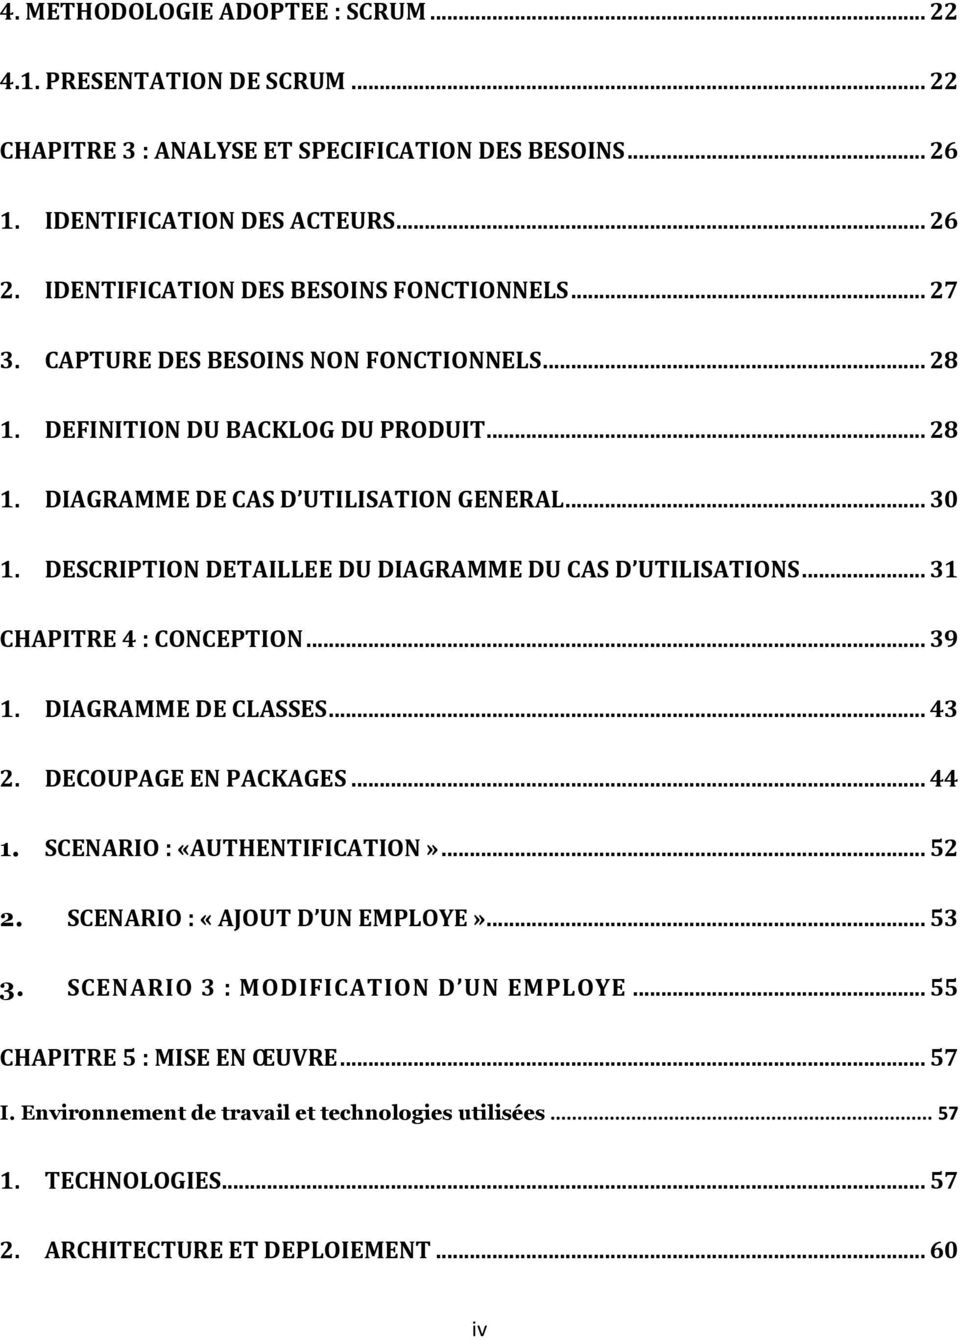 DESCRIPTION DETAILLEE DU DIAGRAMME DU CAS D UTILISATIONS... 31 CHAPITRE 4 : CONCEPTION... 39 1. DIAGRAMME DE CLASSES... 43 2. DECOUPAGE EN PACKAGES... 44 1. SCENARIO : «AUTHENTIFICATION»... 52 2.